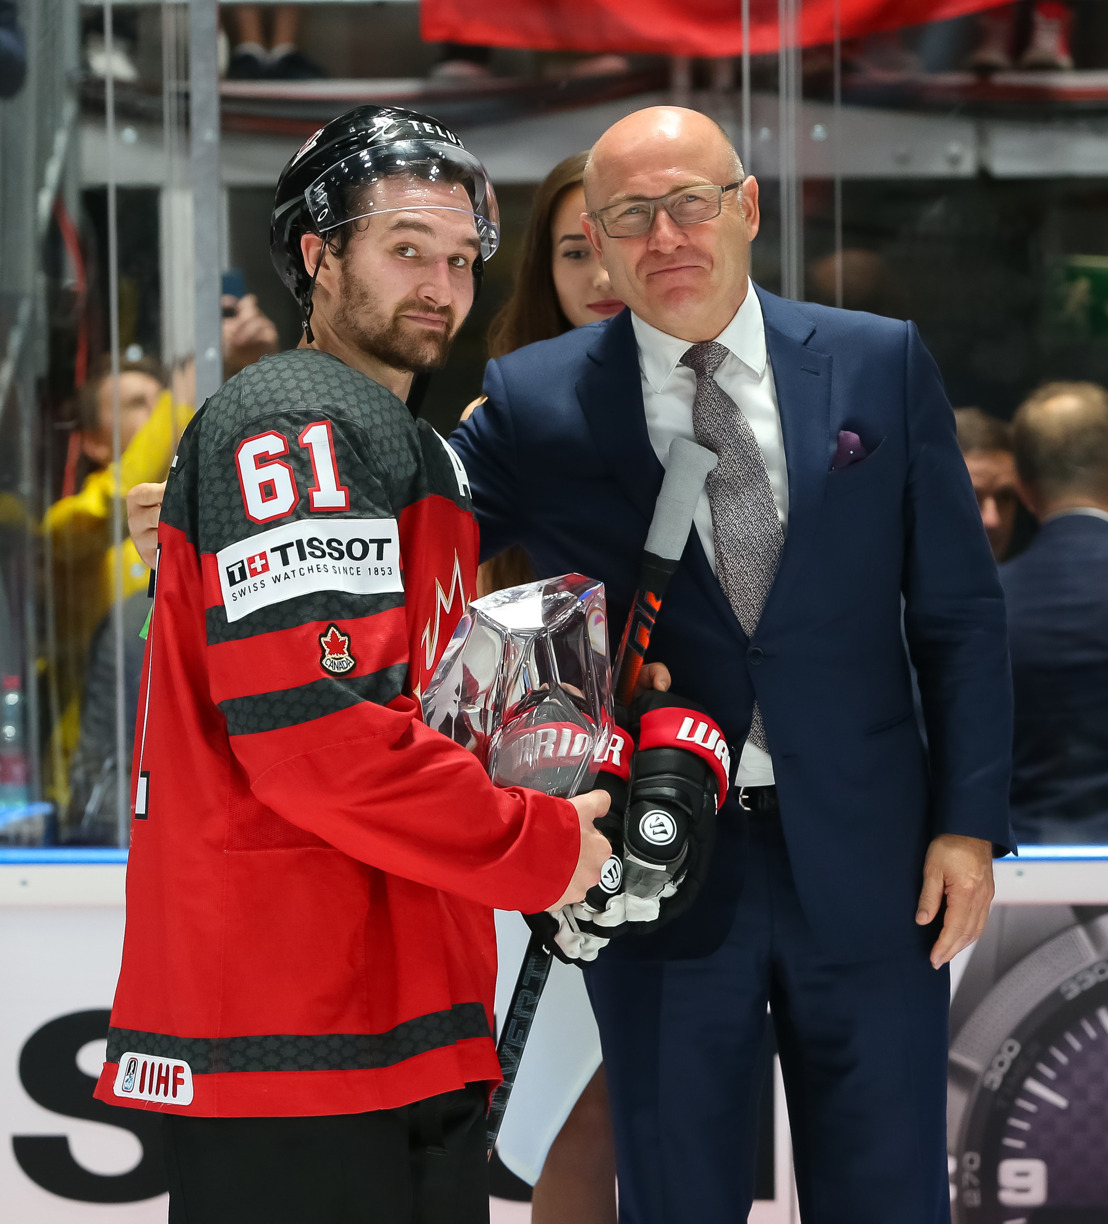 Bernhard Maier presents trophy to Most Valuable Player of IIHF Ice Hockey World Championship 2019